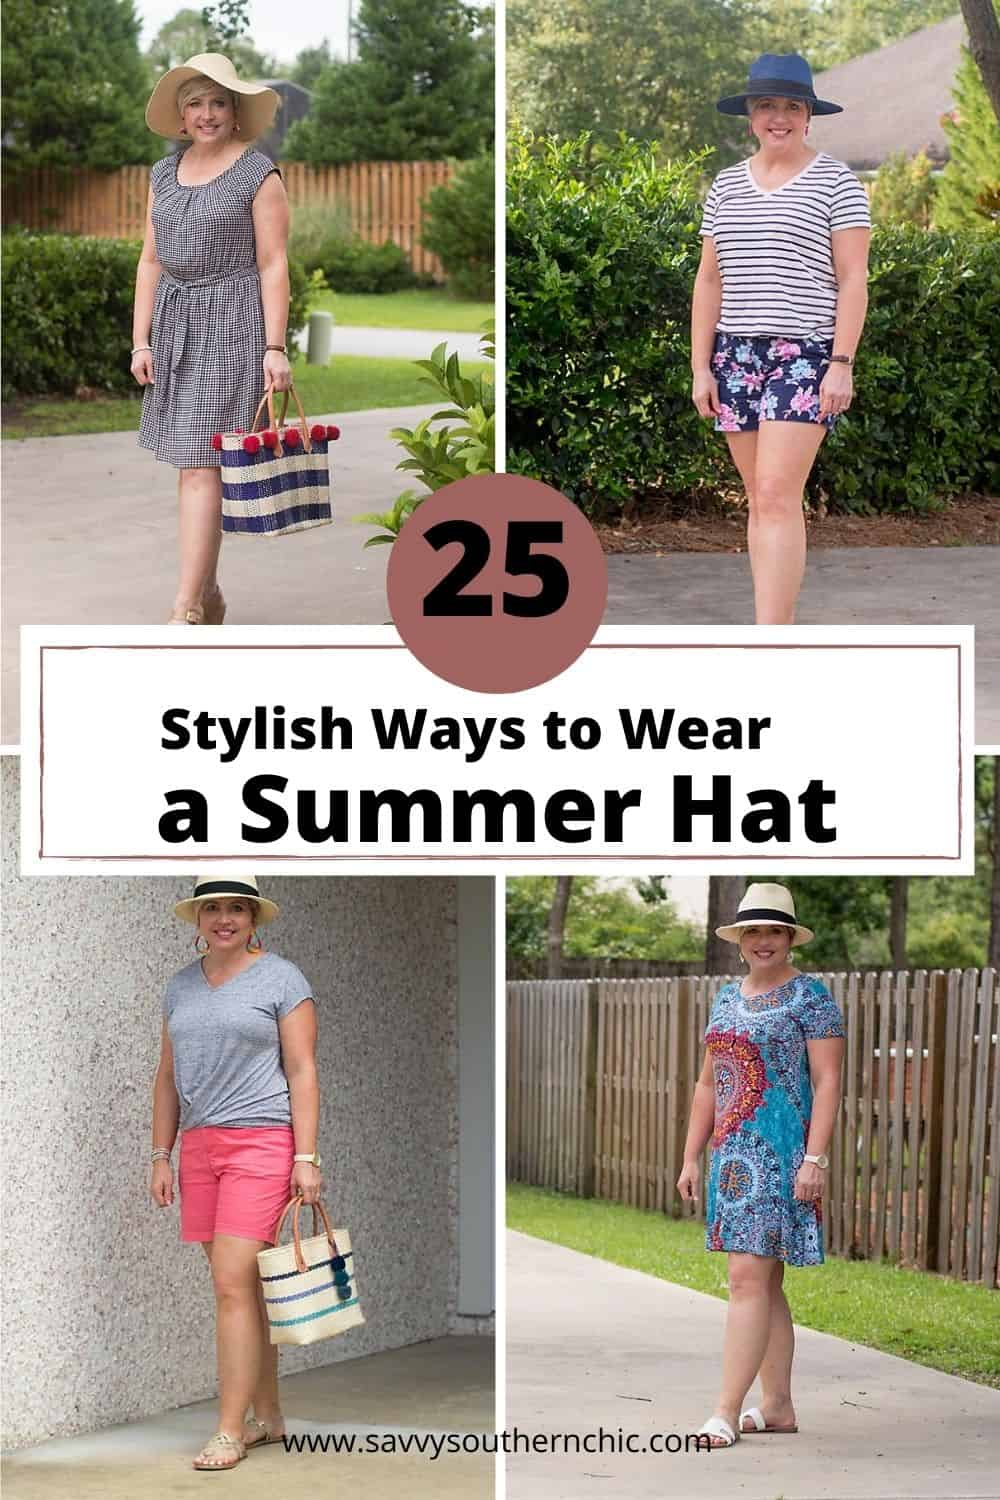 over 25 ways to wear a summer hat